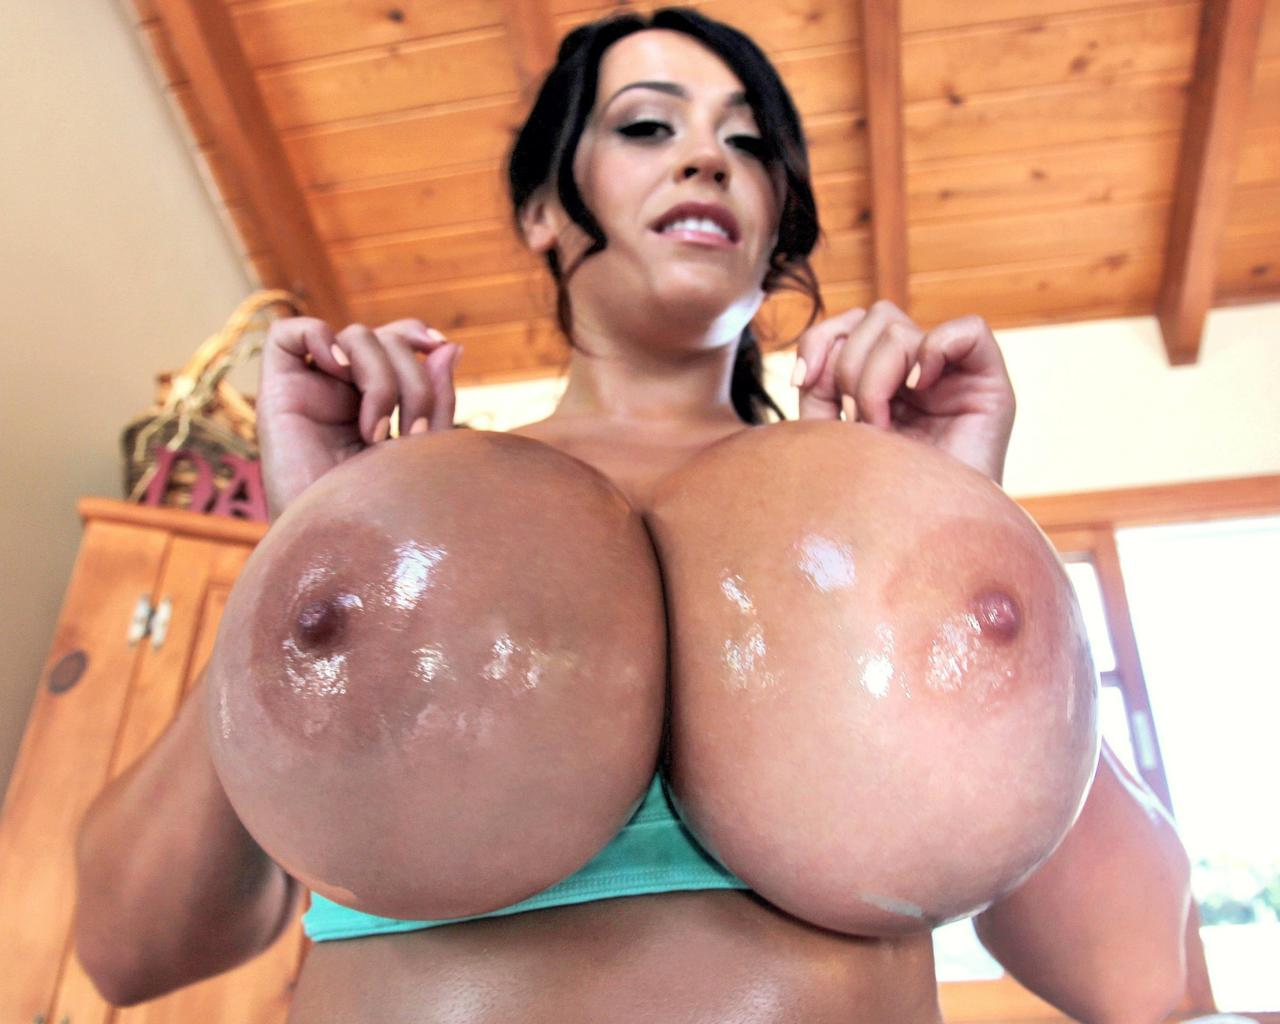 guy-oily-black-boobs-pussy-photo